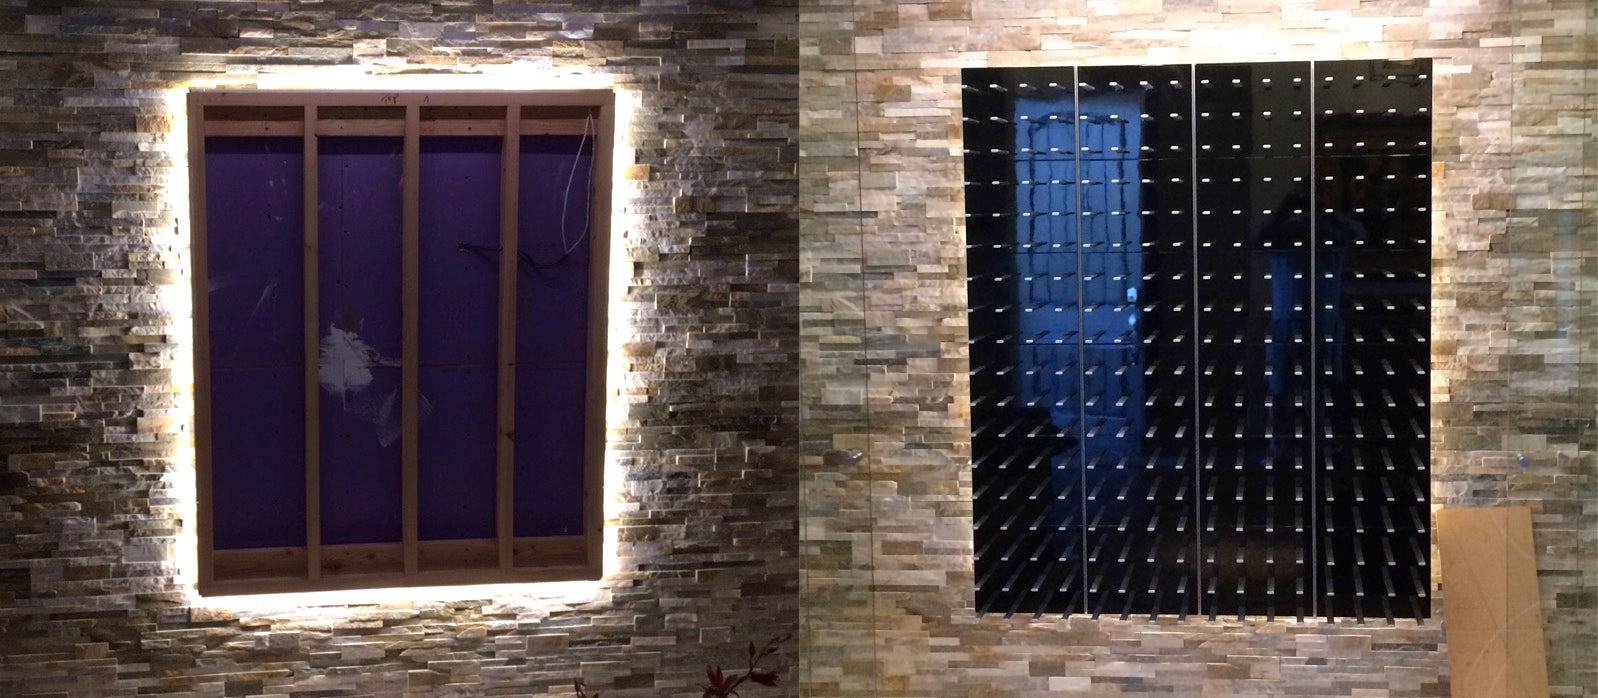 LED backlighting for wine cellar